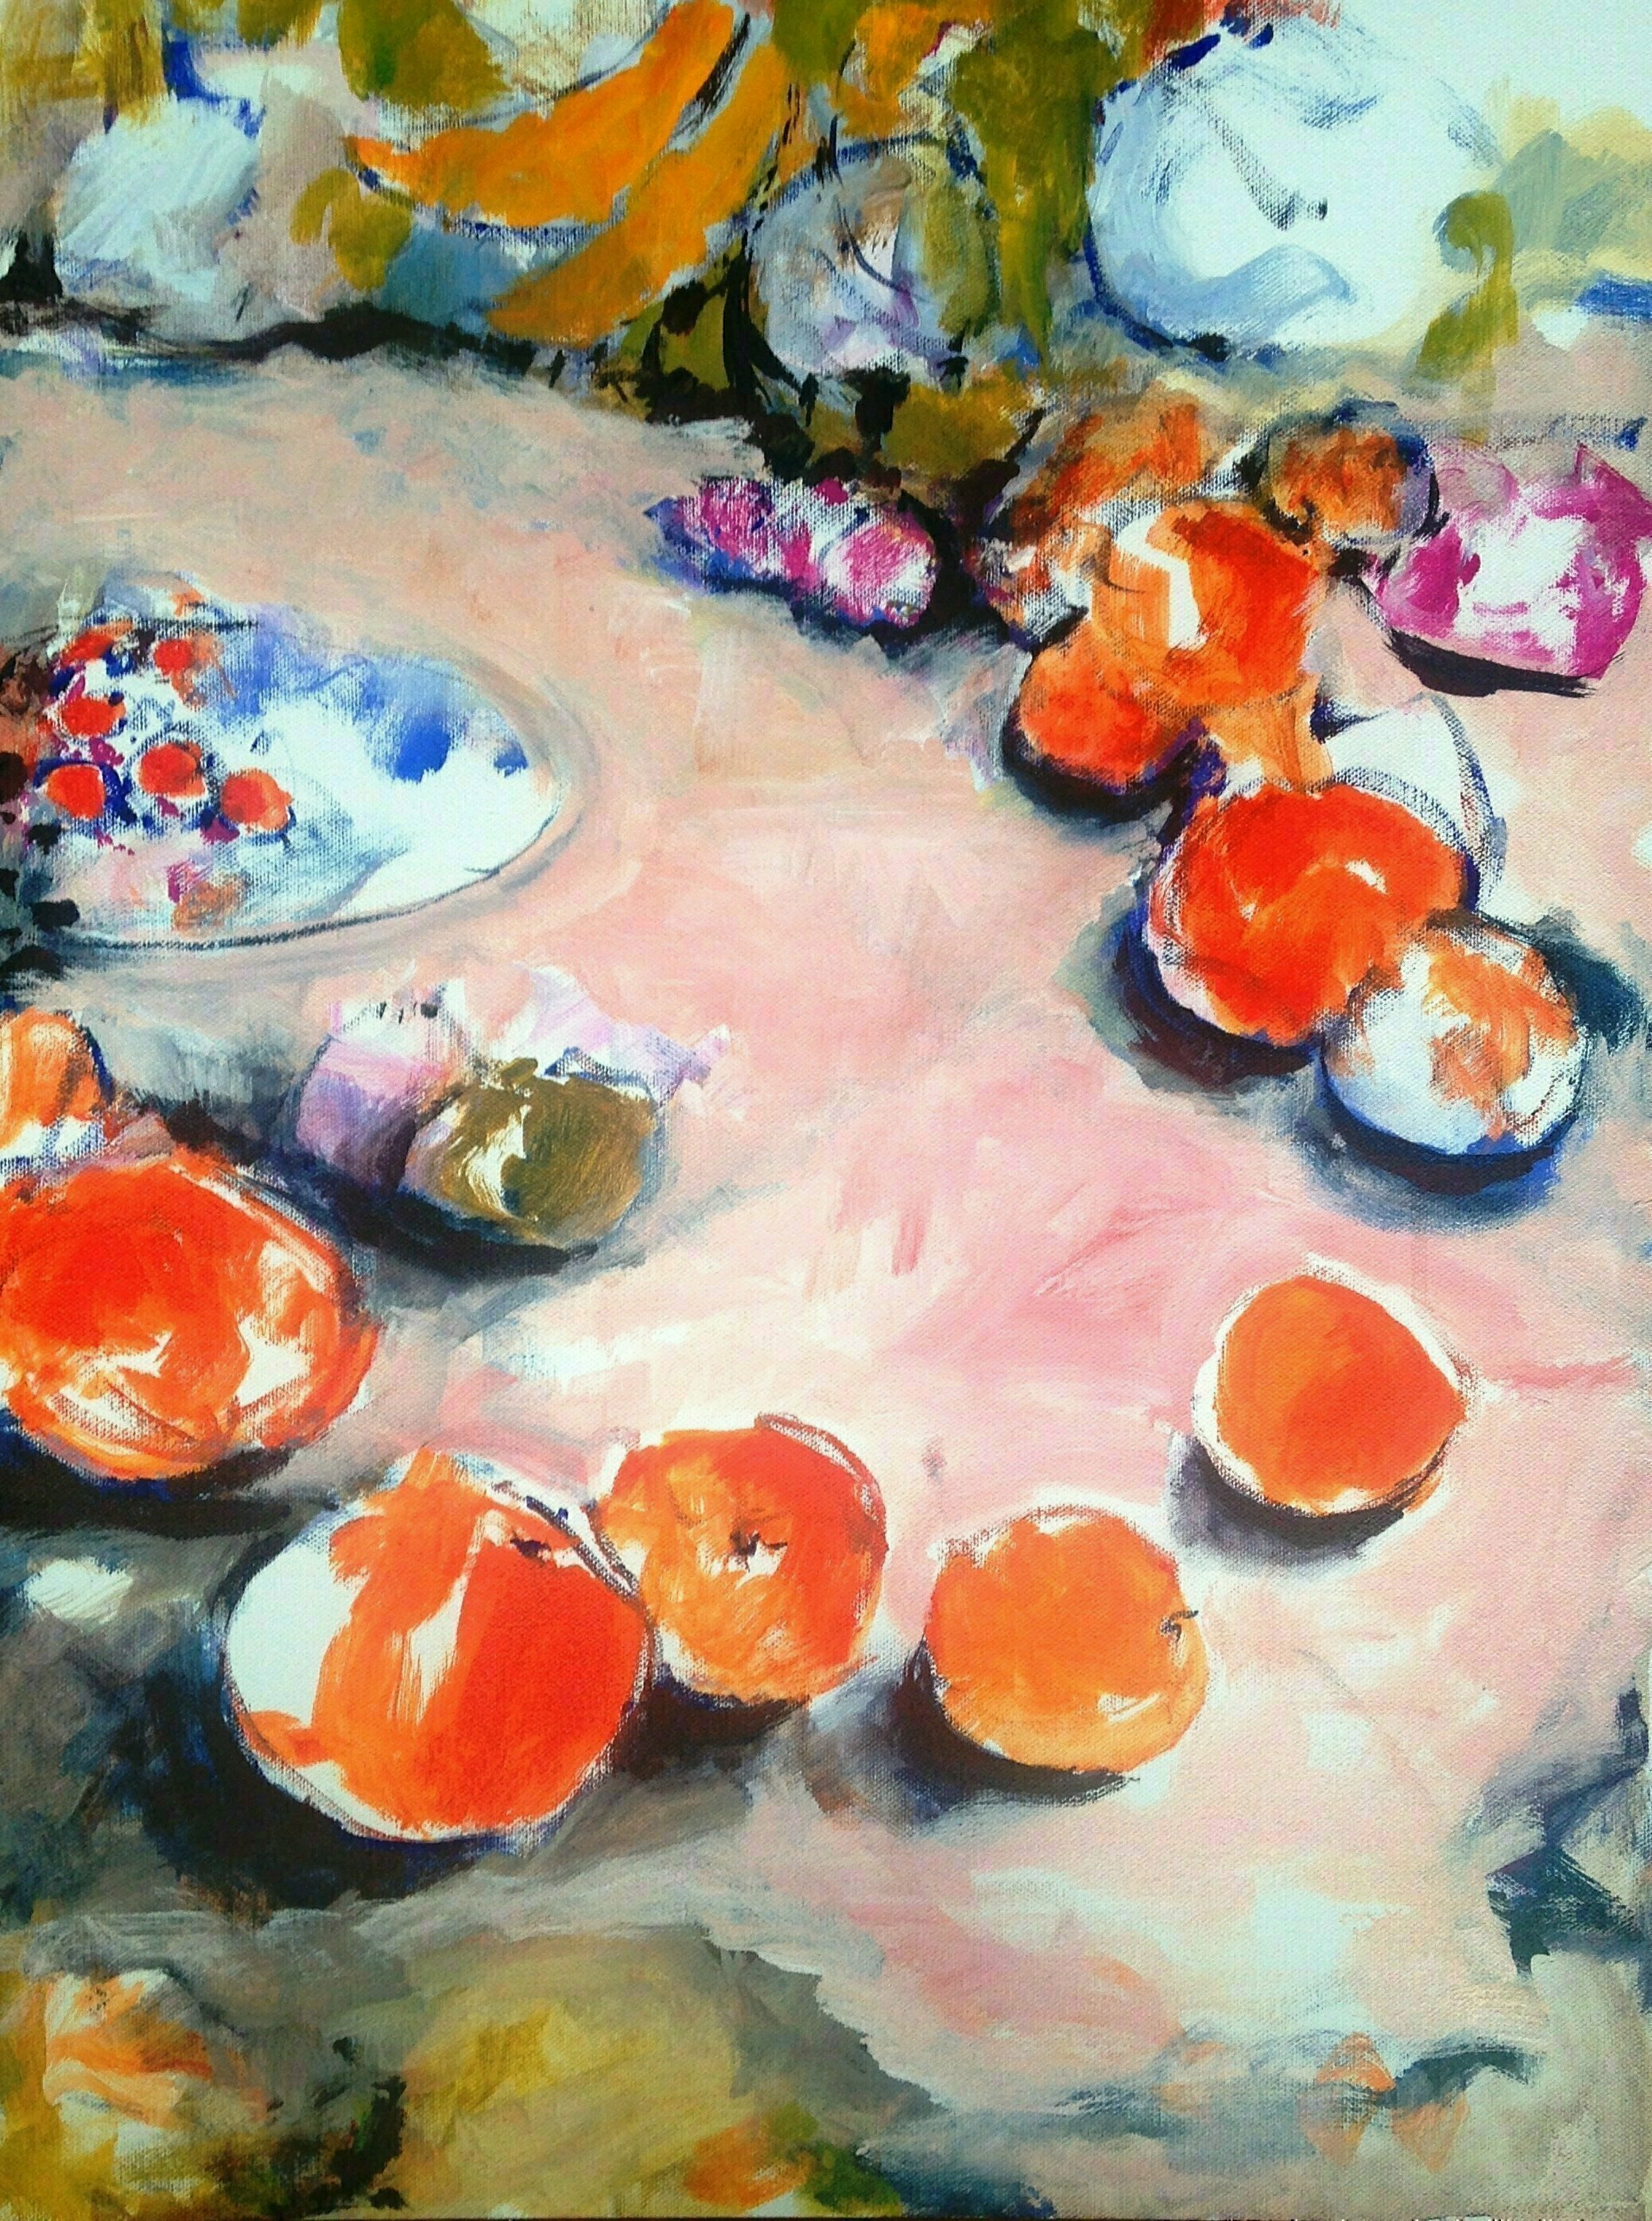 Daniel Clarke, 'Still Life No 23', 2017, original Painting Acrylic, 18 x 24  x 7 inches. Artwork description: 3495 Still Life No. 23 the artist viewing a stunning group of fruit deliciousness in a group singing for dinner. This is the inspiration called for an acrylic celebration. The artist will sign the piece when sold. ...